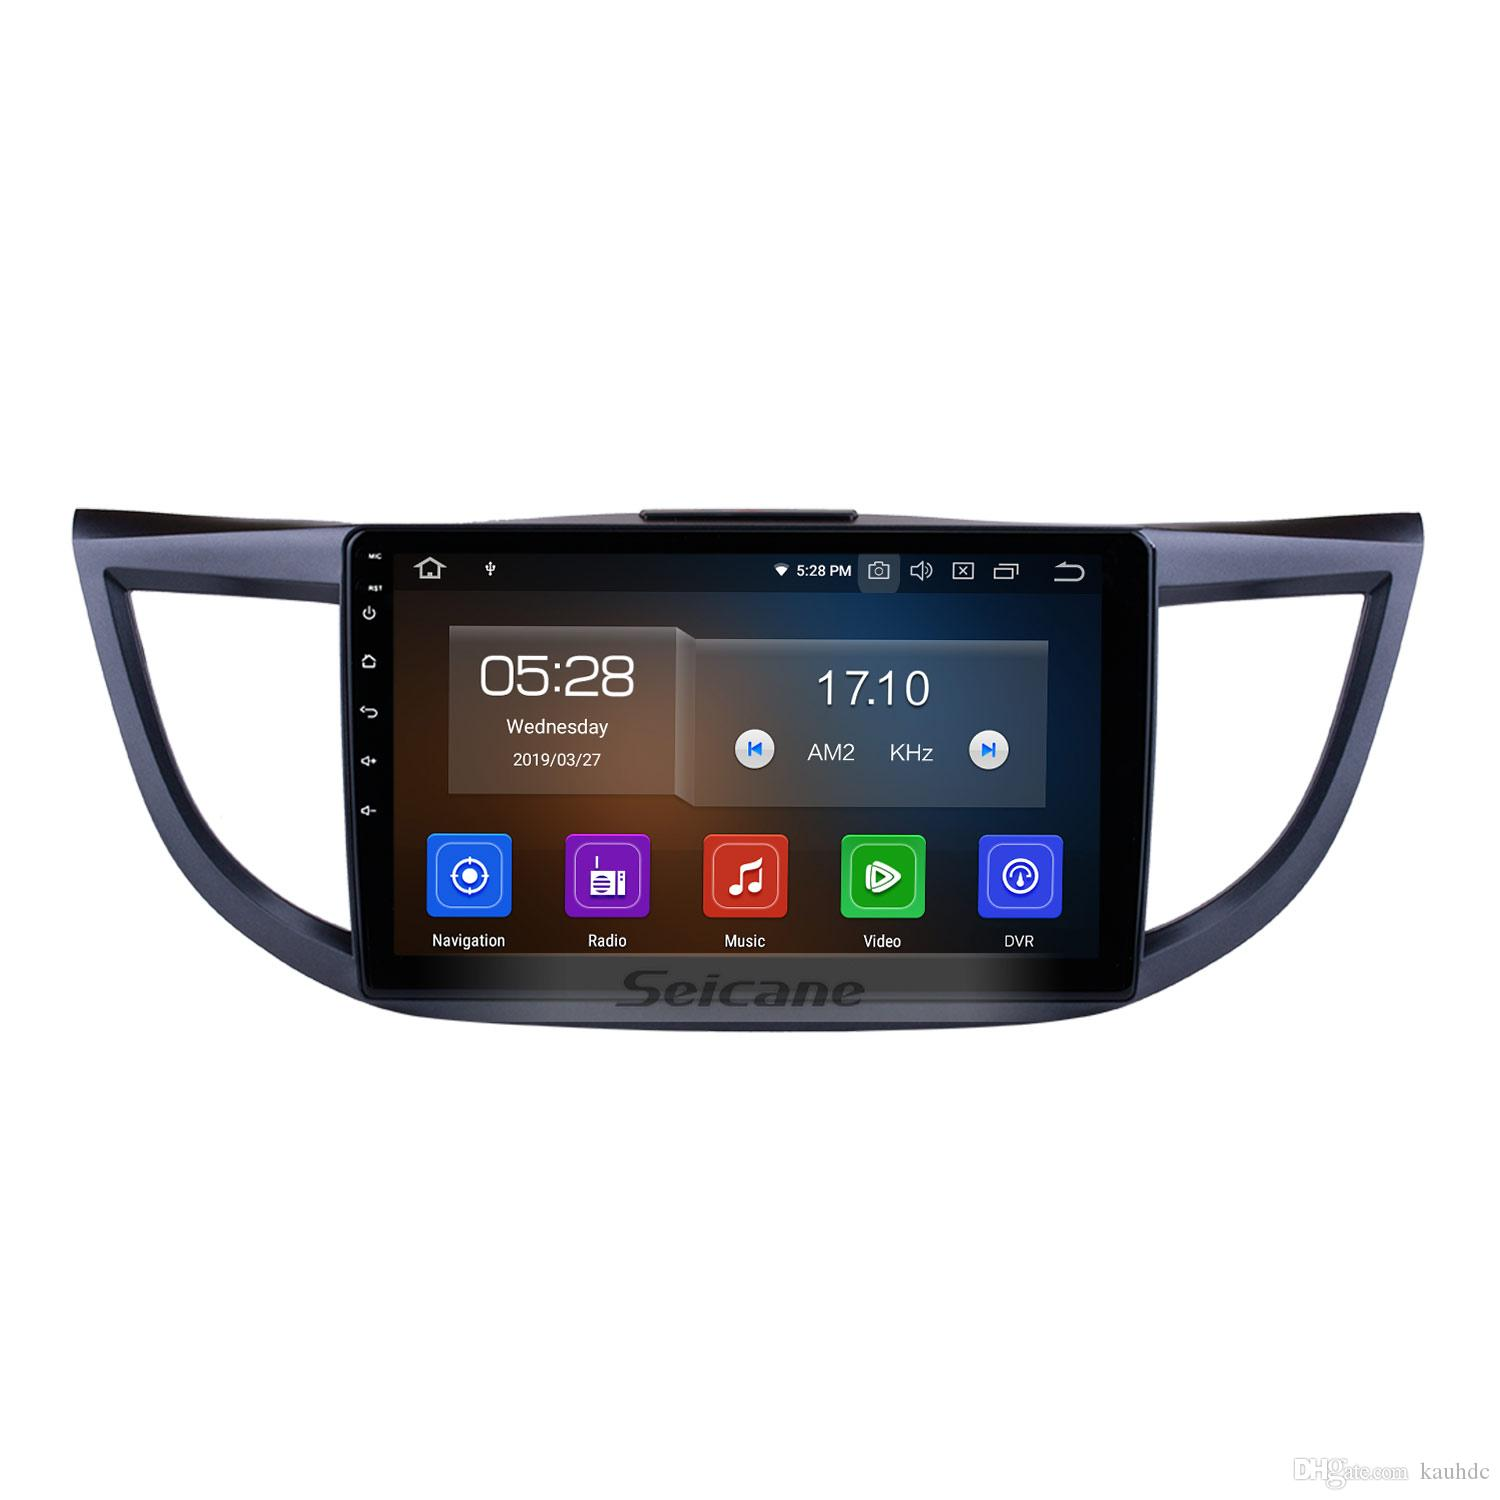 10.1 Inch Android 9.0 Car Radio for 2011-2015 Honda CRV high version with Bluetooth GPS navigation WIFI support Car dvd Rear camera 3G 1080P